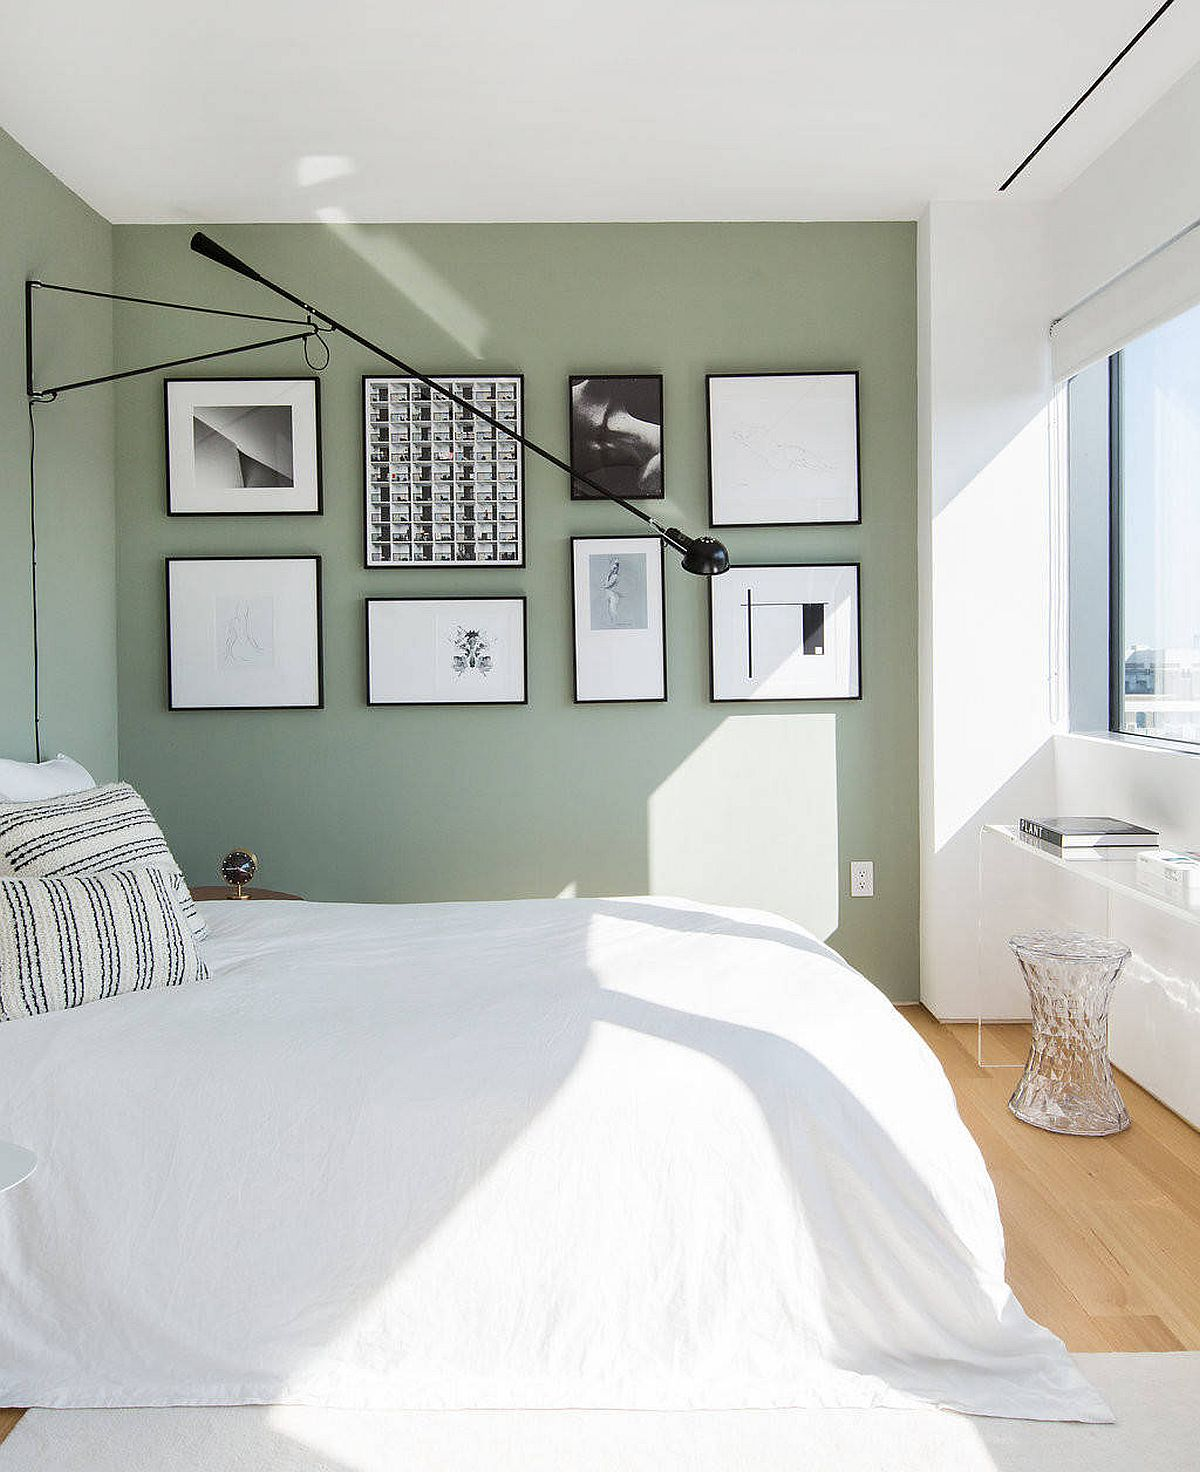 Minimal-gallery-wall-is-just-perfect-for-this-modern-bedroom-with-pastel-green-wall-94814